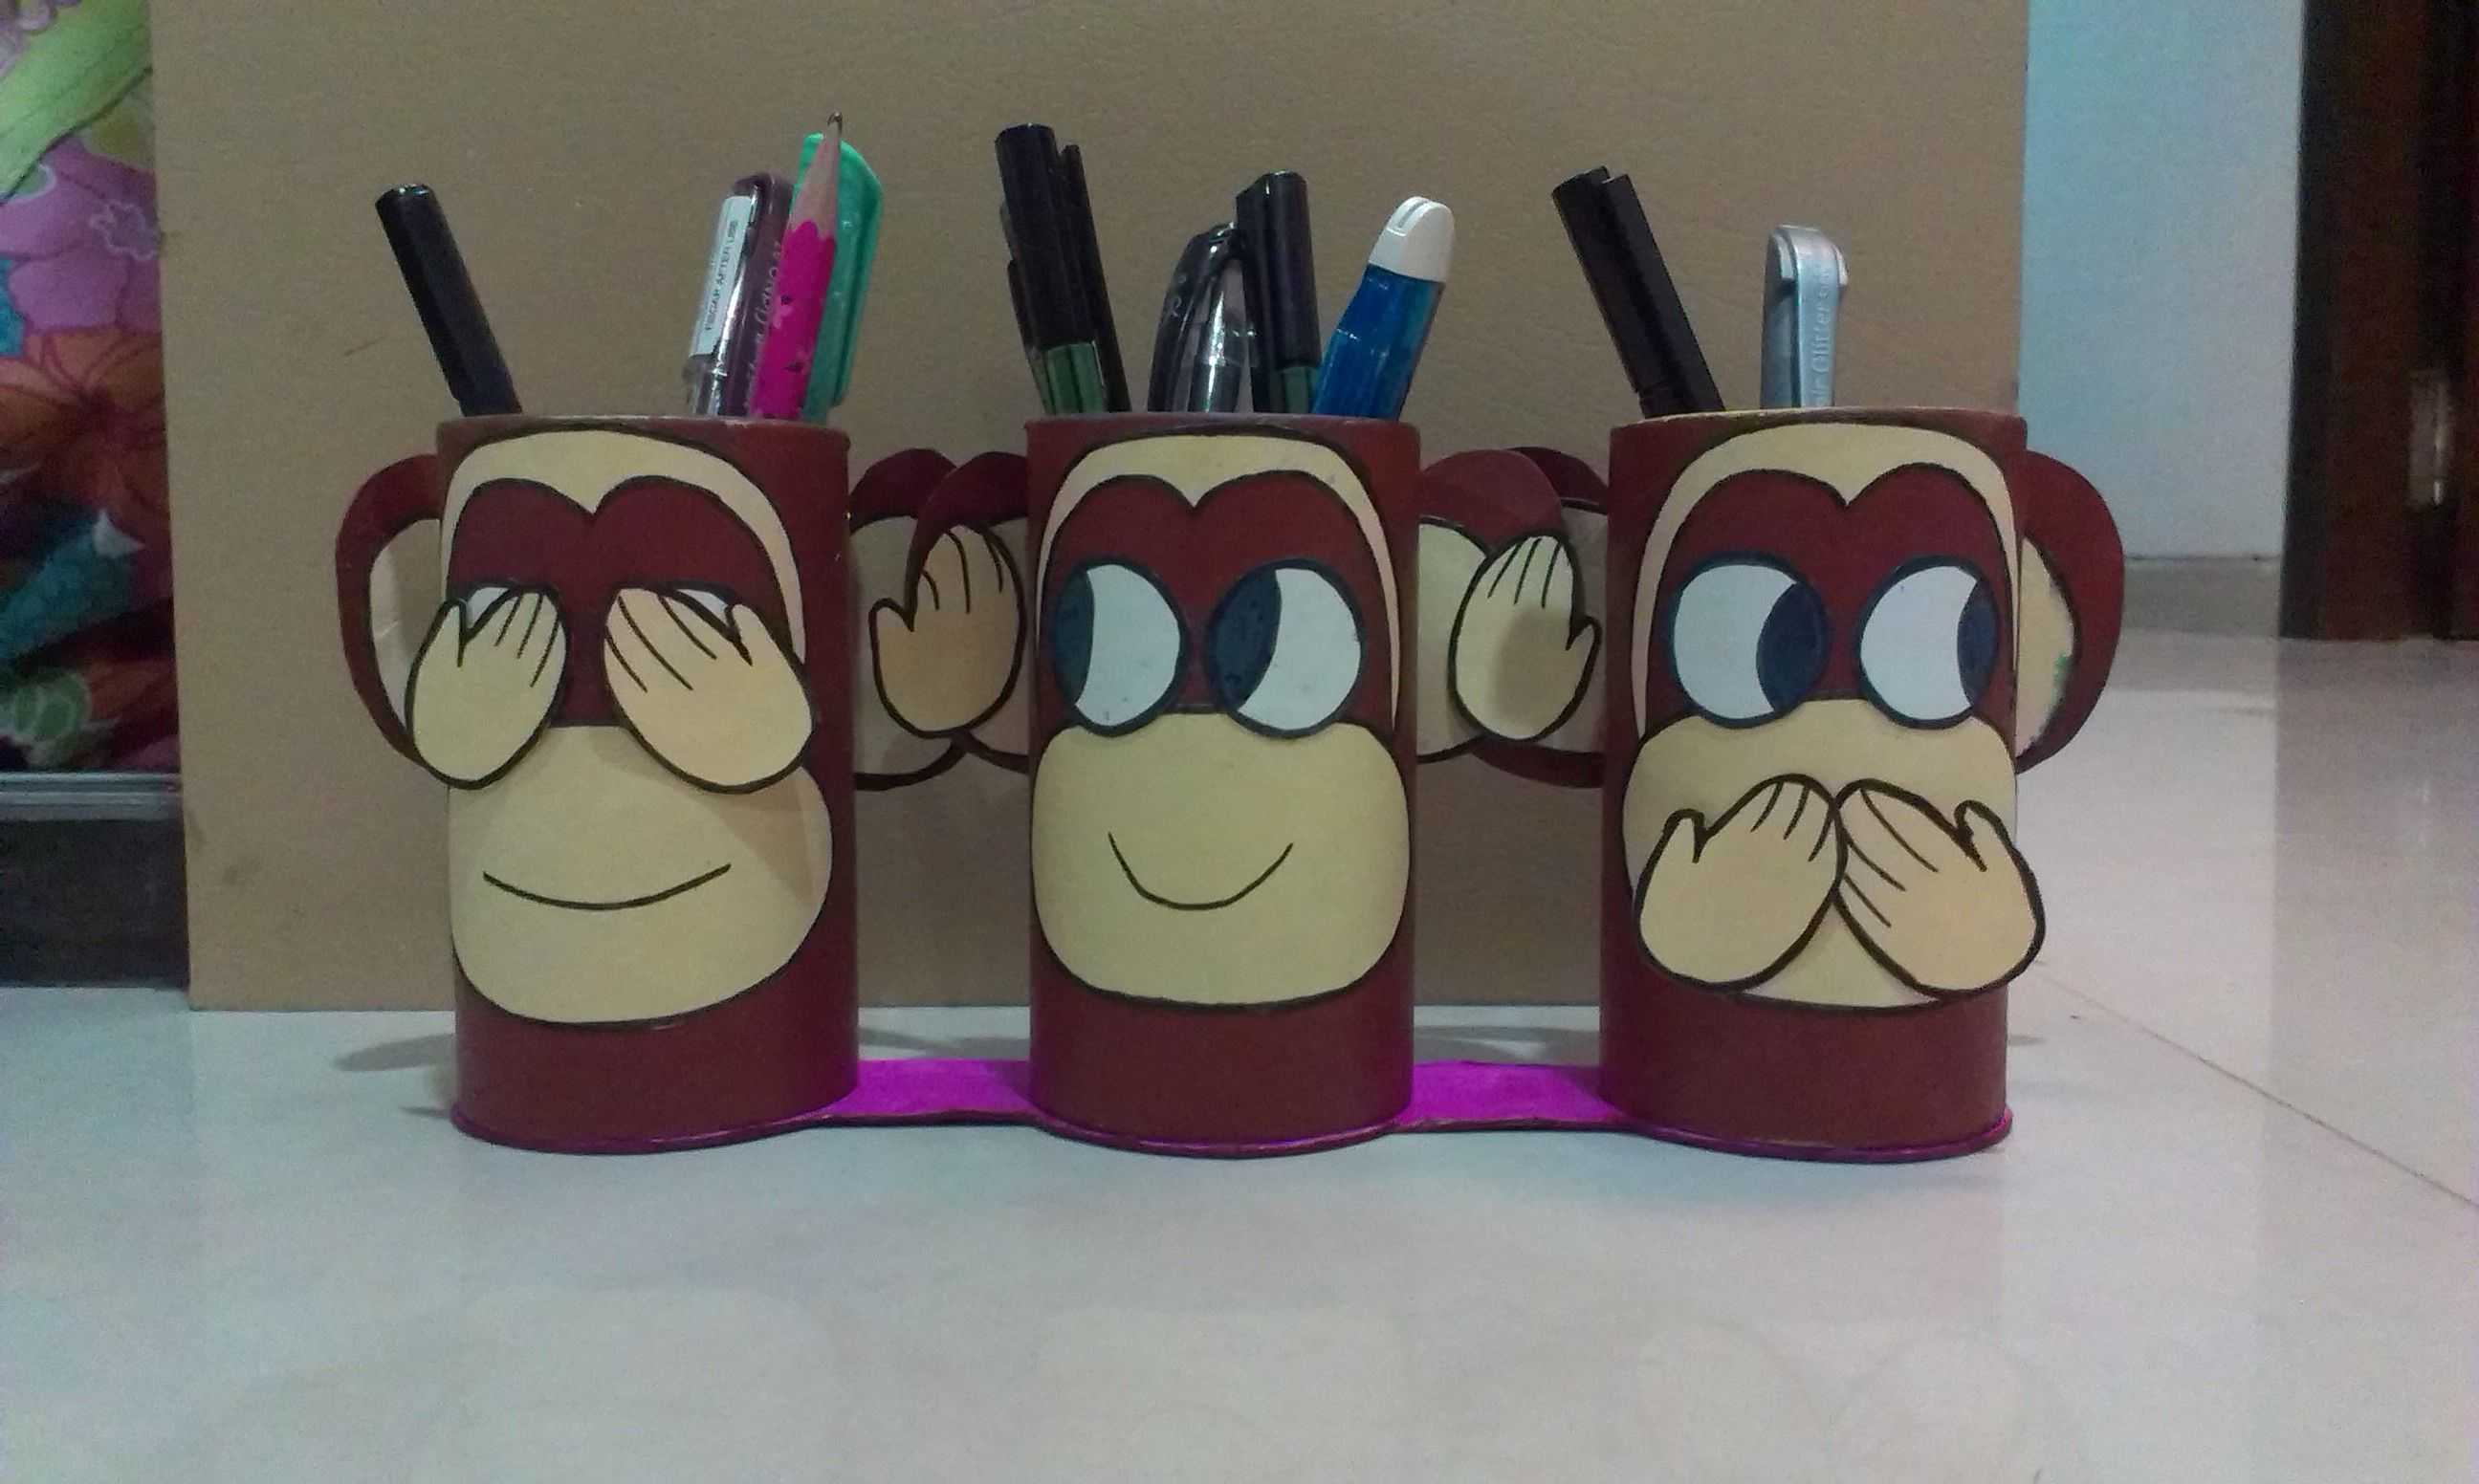 Gandhiji 39 s 3 monkeys pen stand diy diypenstand best out for Craft using waste bottles